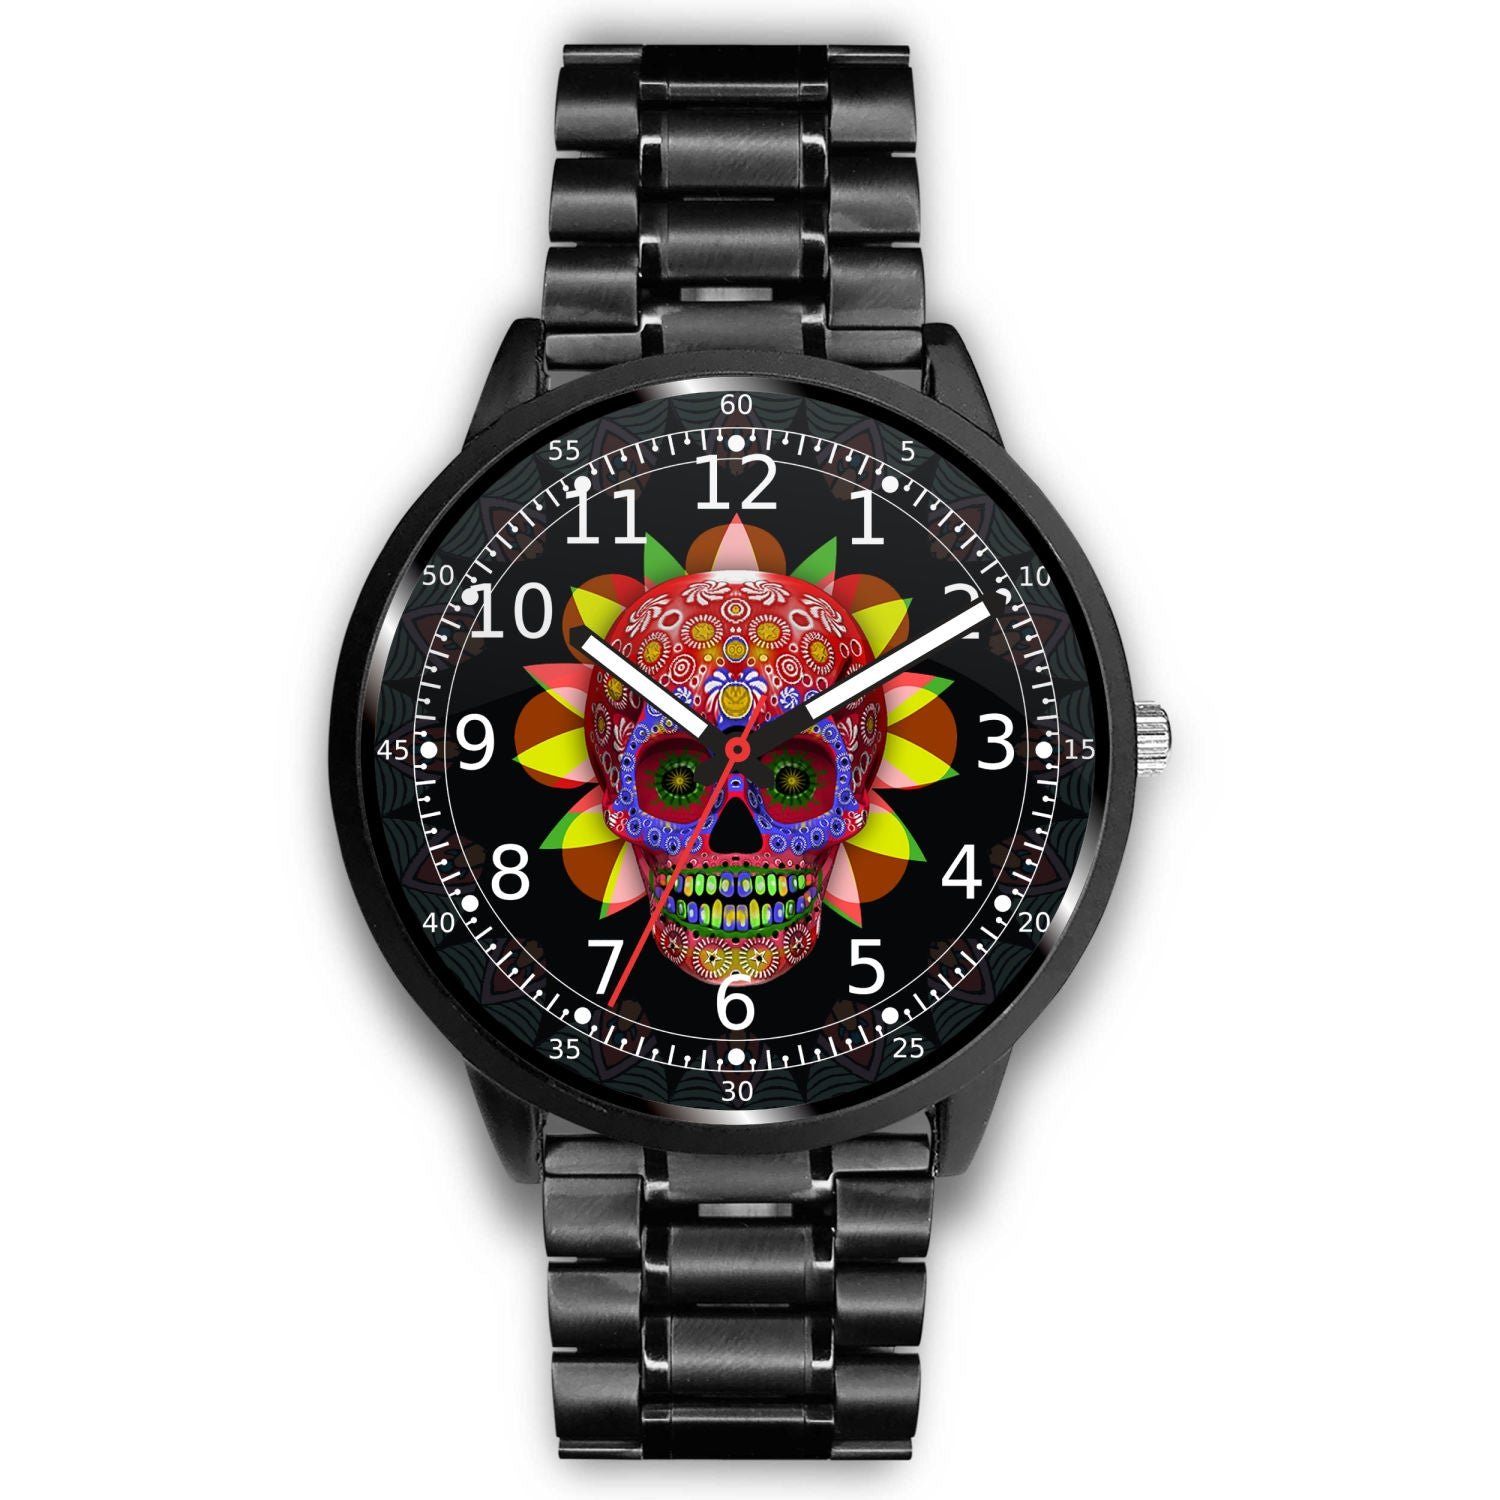 3D Skull Watch - Stainless steel back with leather/ stainless steel band 002